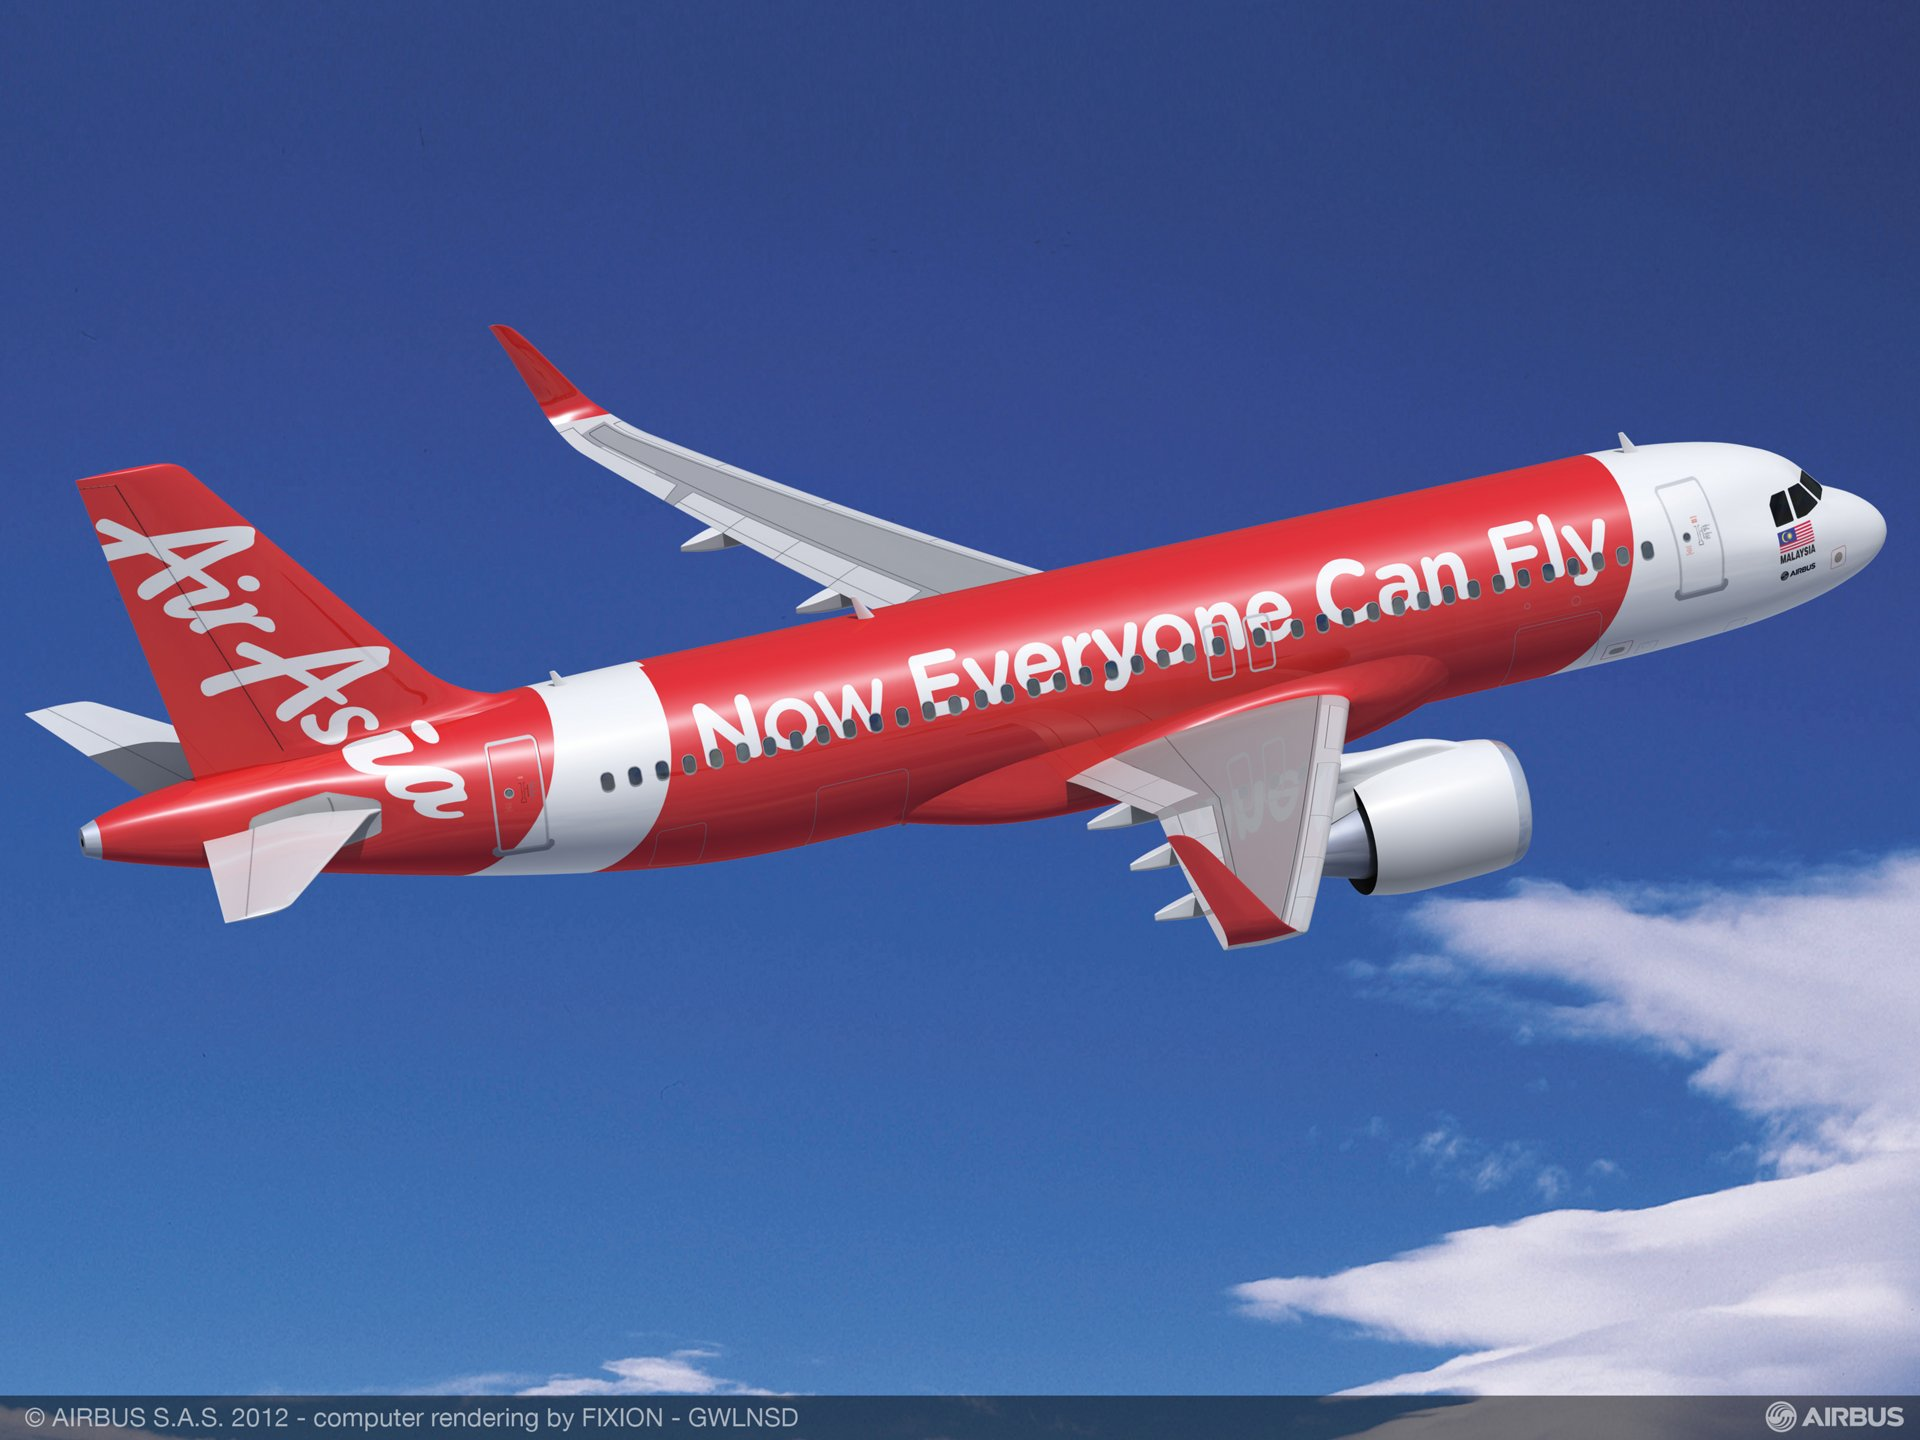 AirAsia has placed a new order for 64 A320neo and 36 A320ceo jetliners, reaffirming its position as the world's largest customer for Airbus' A320 Family